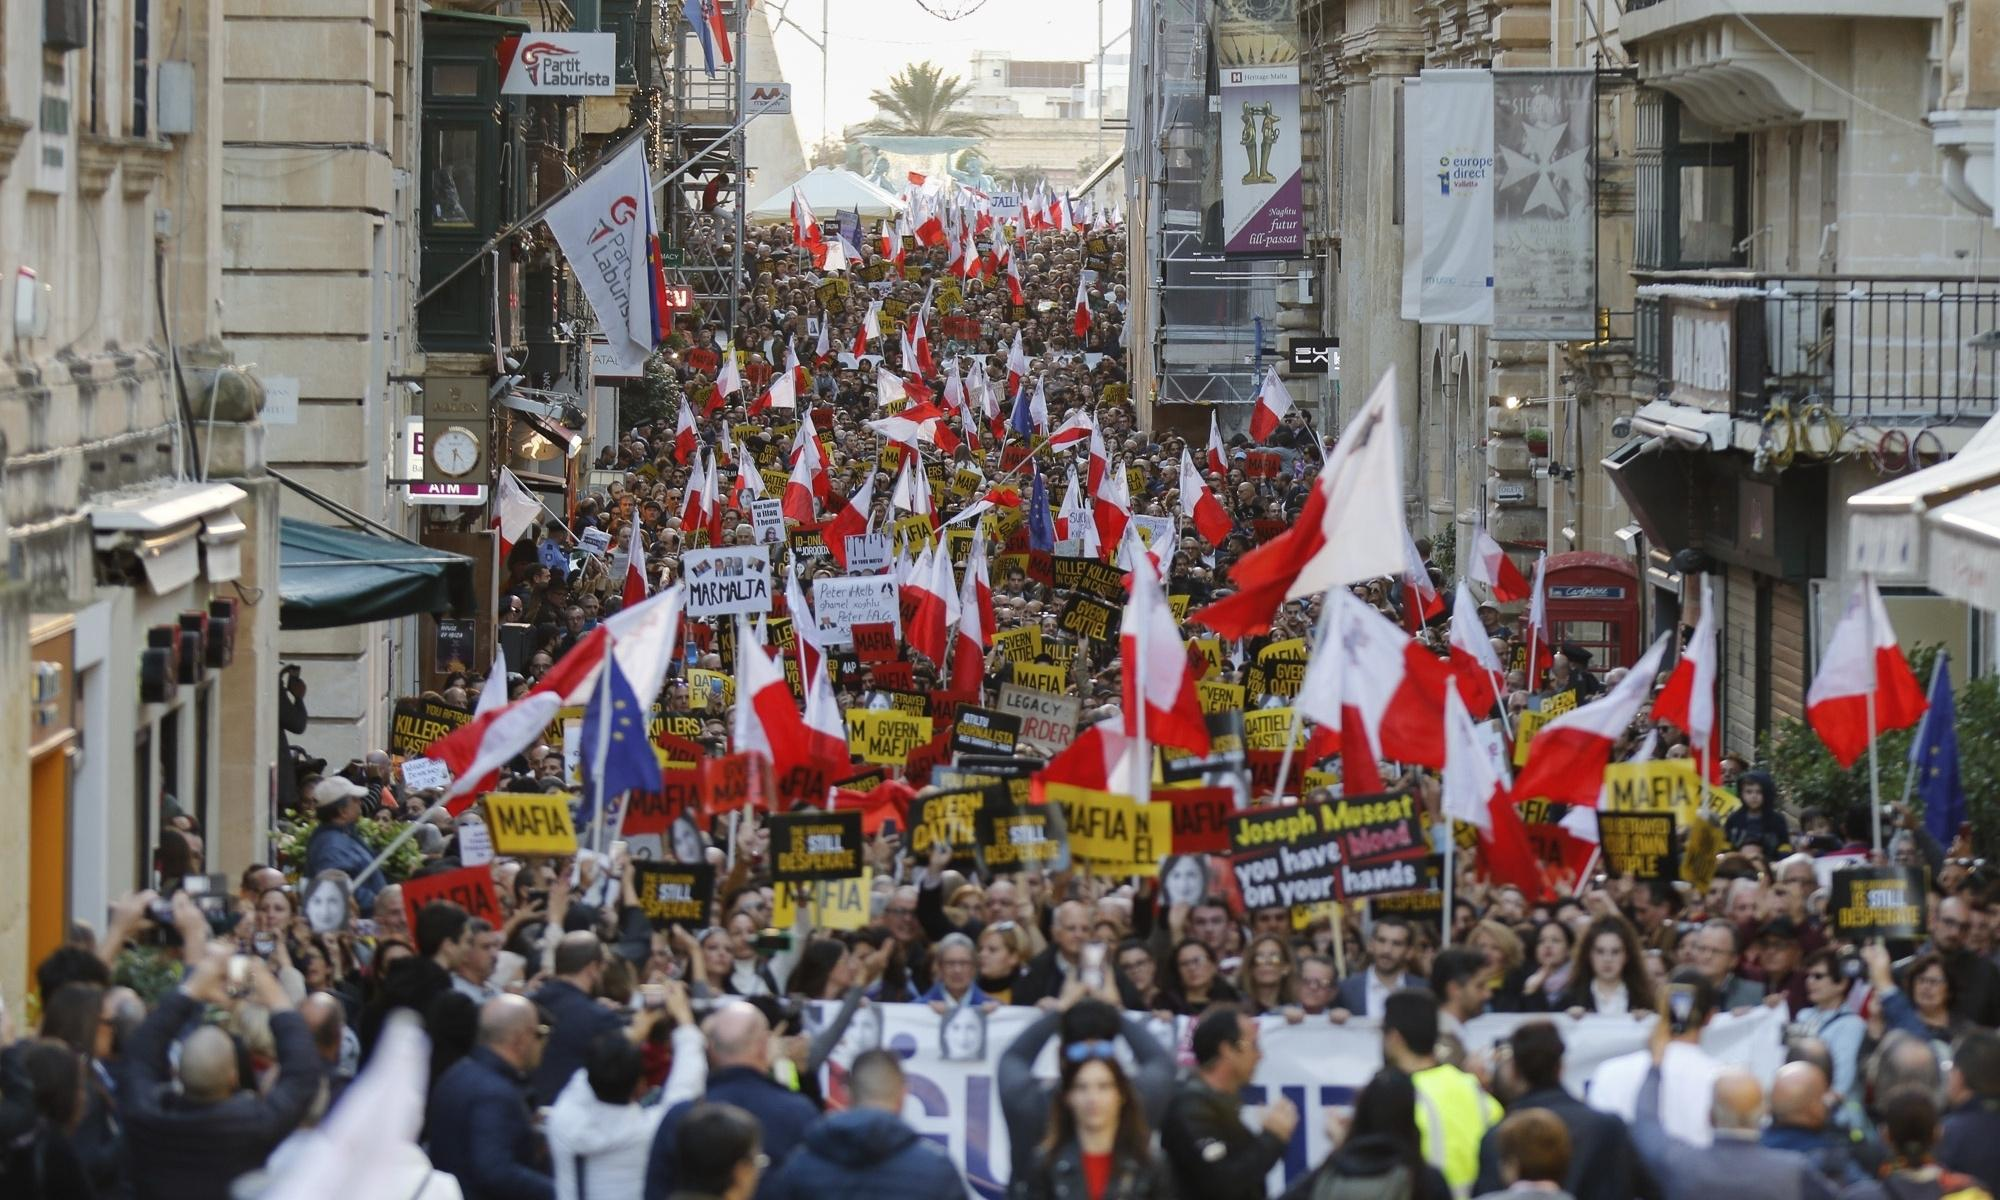 Malta's corruption is not just in the heart of government, it's the entire body